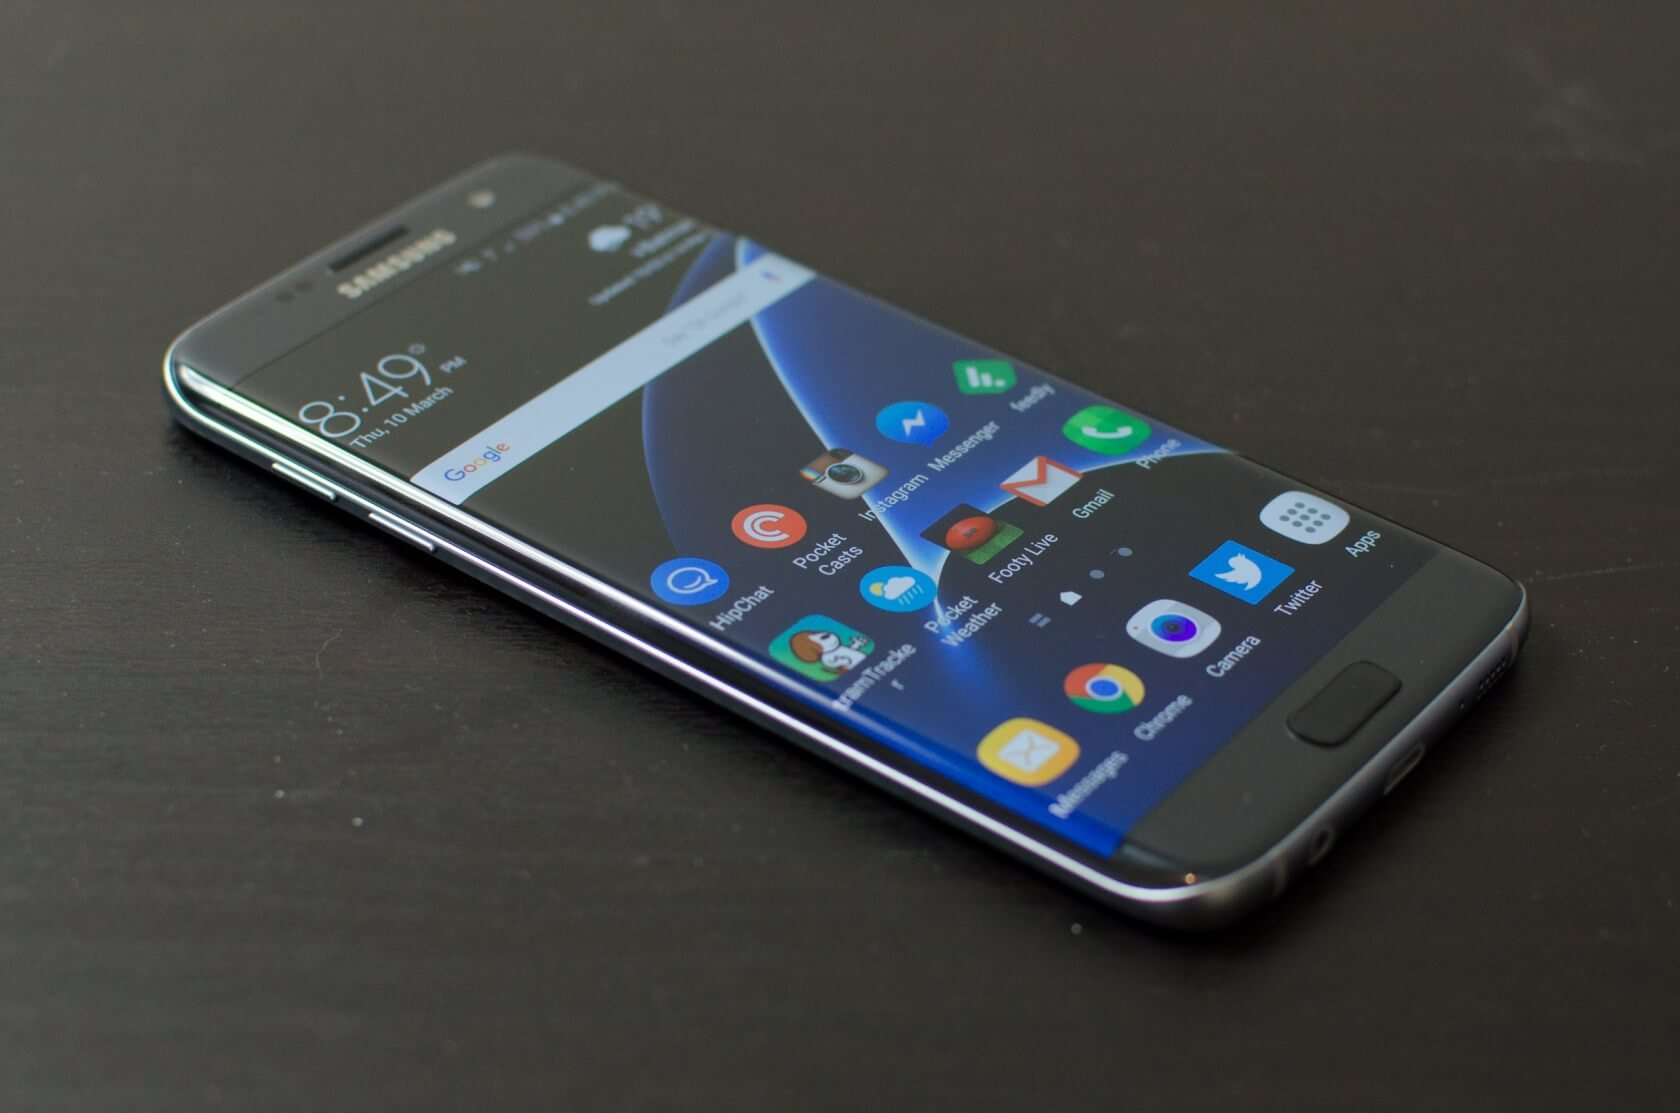 Samsung will reportedly implement a 14-day trial limit on